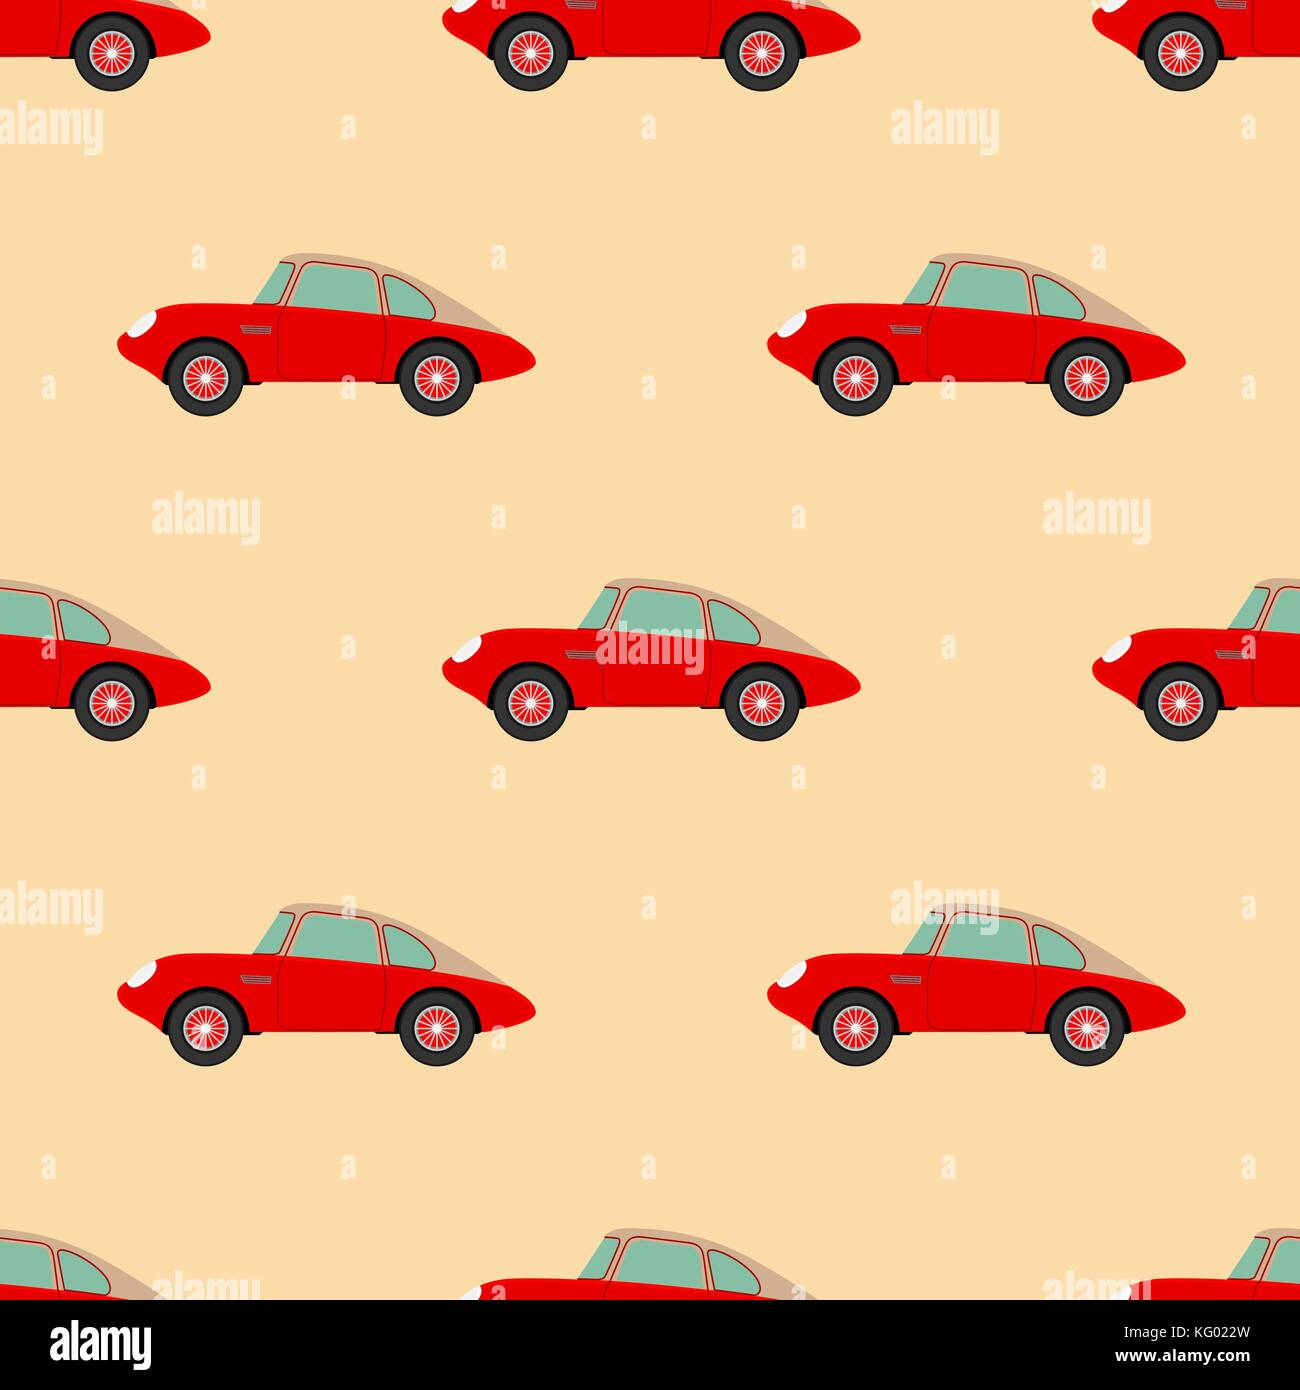 1,320 free vector graphics of cars. Seamles Cute Car Pattern Wallpaper Background Vector Illustration Stock Vector Image Art Alamy